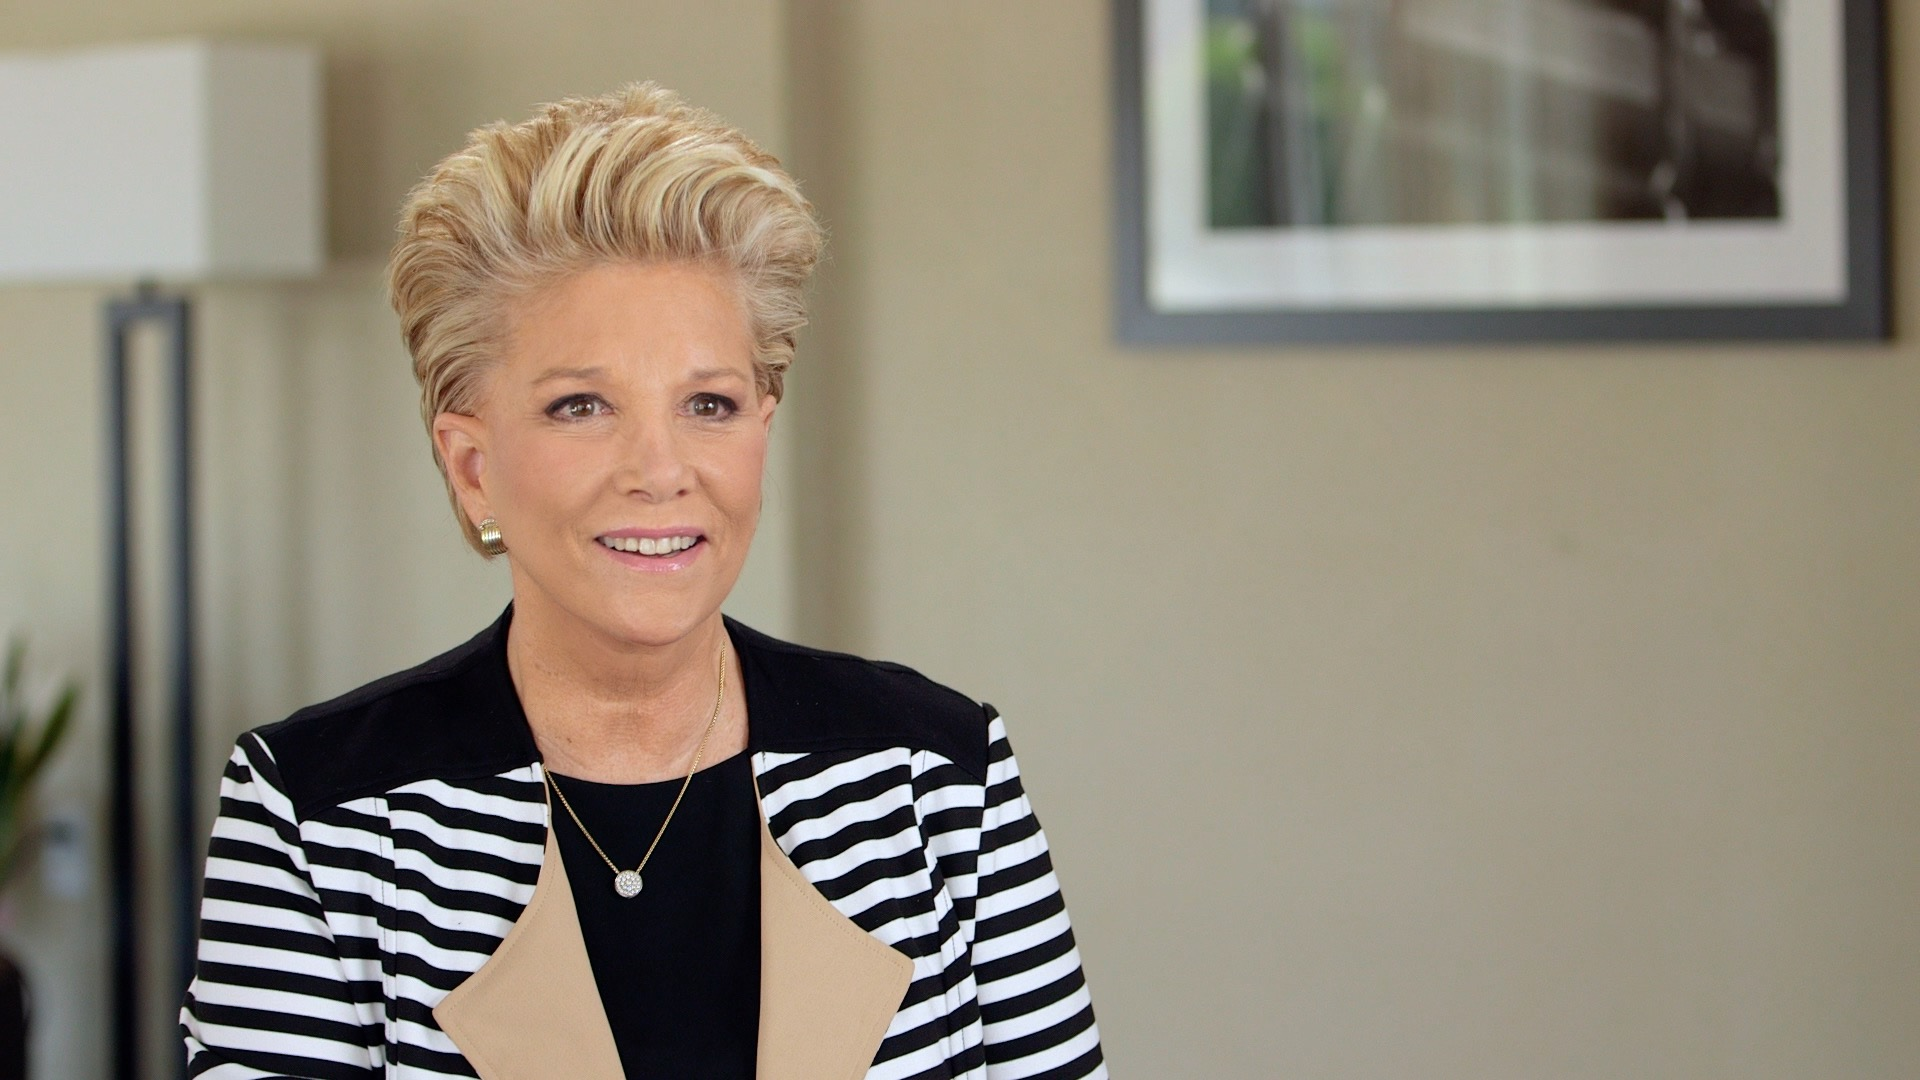 Galileo Media Arts works with Joan Lunden for Amgen Cancer research